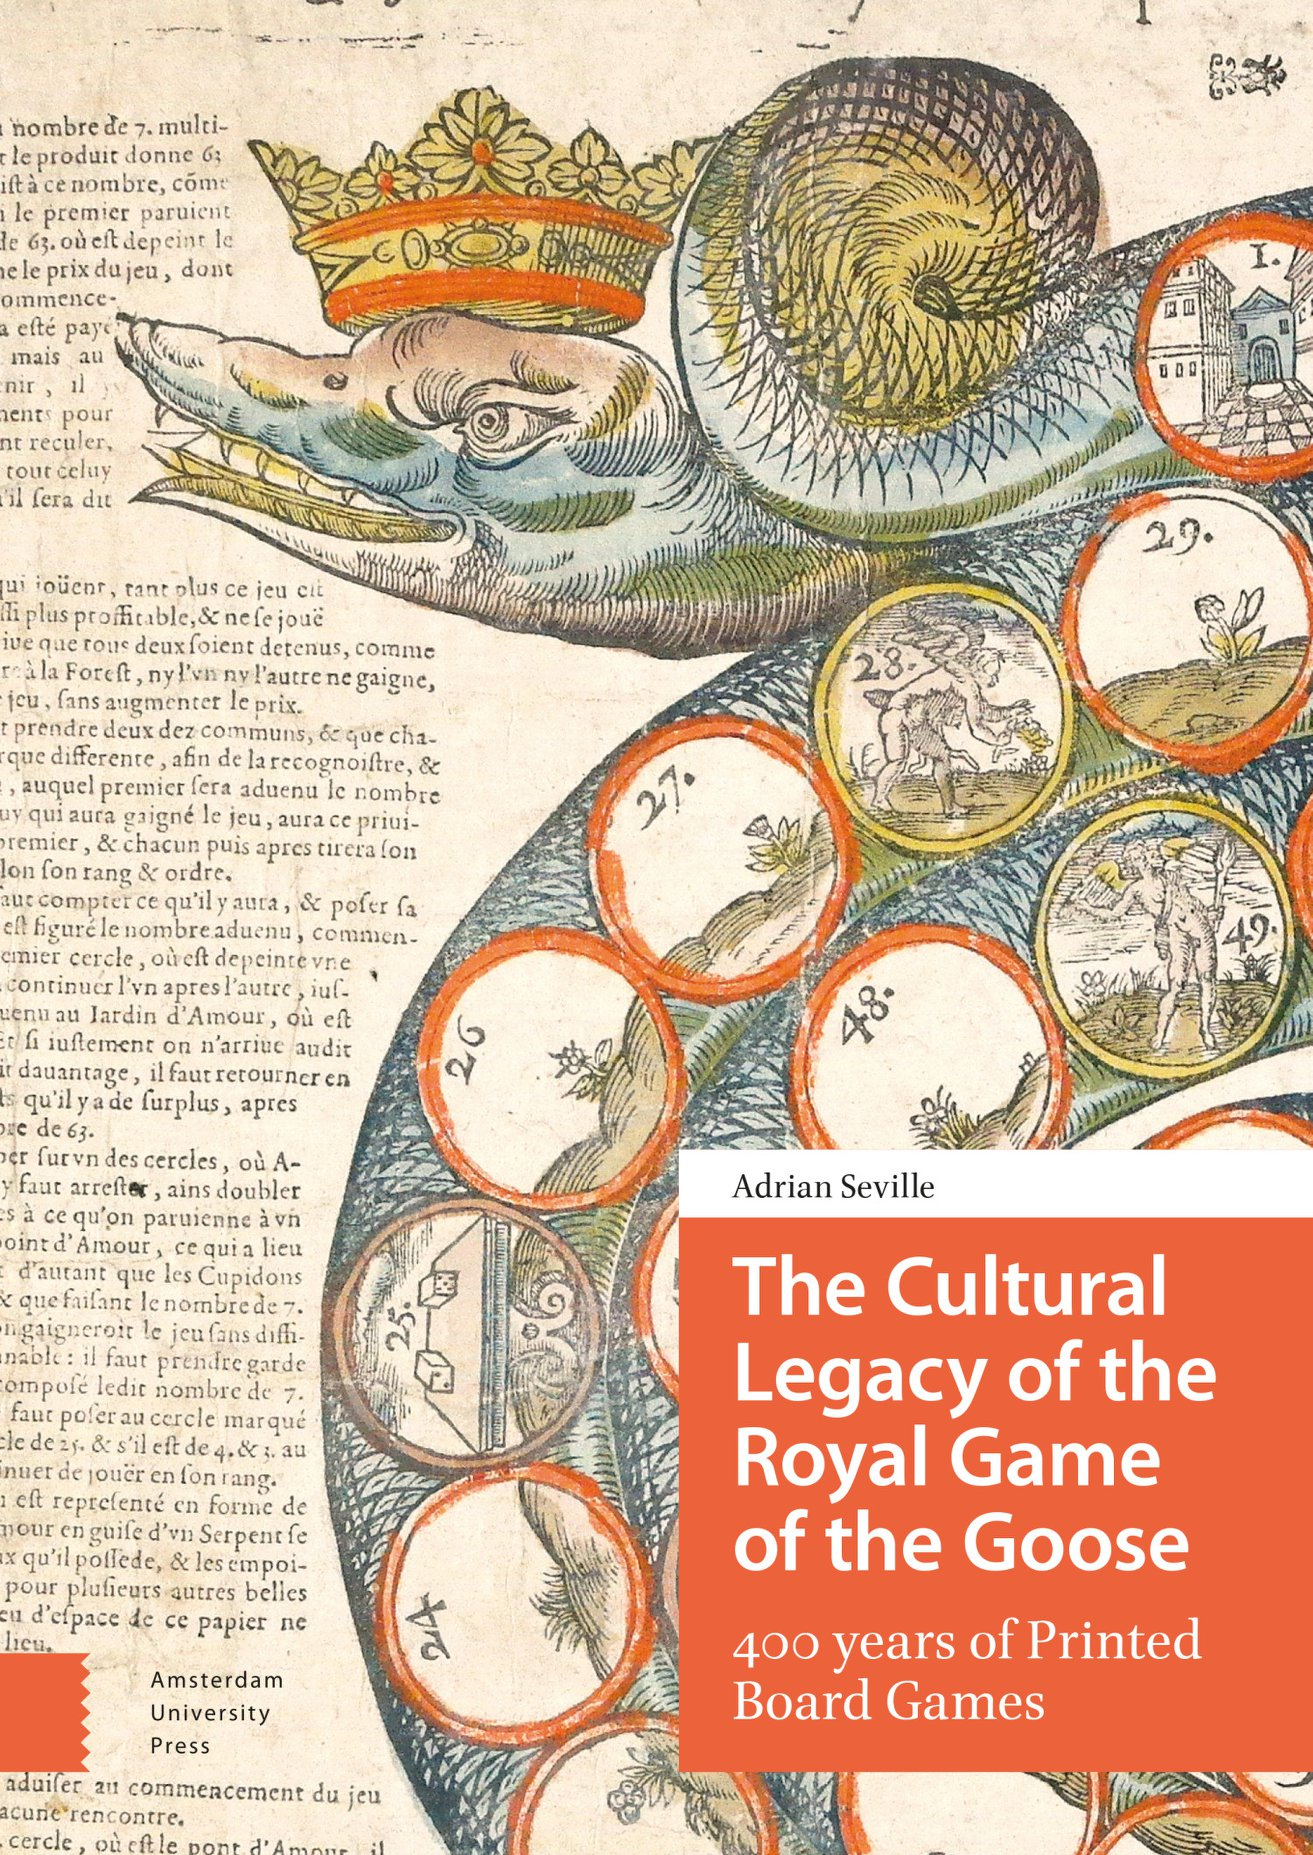 The Cultural Legacy of the Royal Game of the Goose